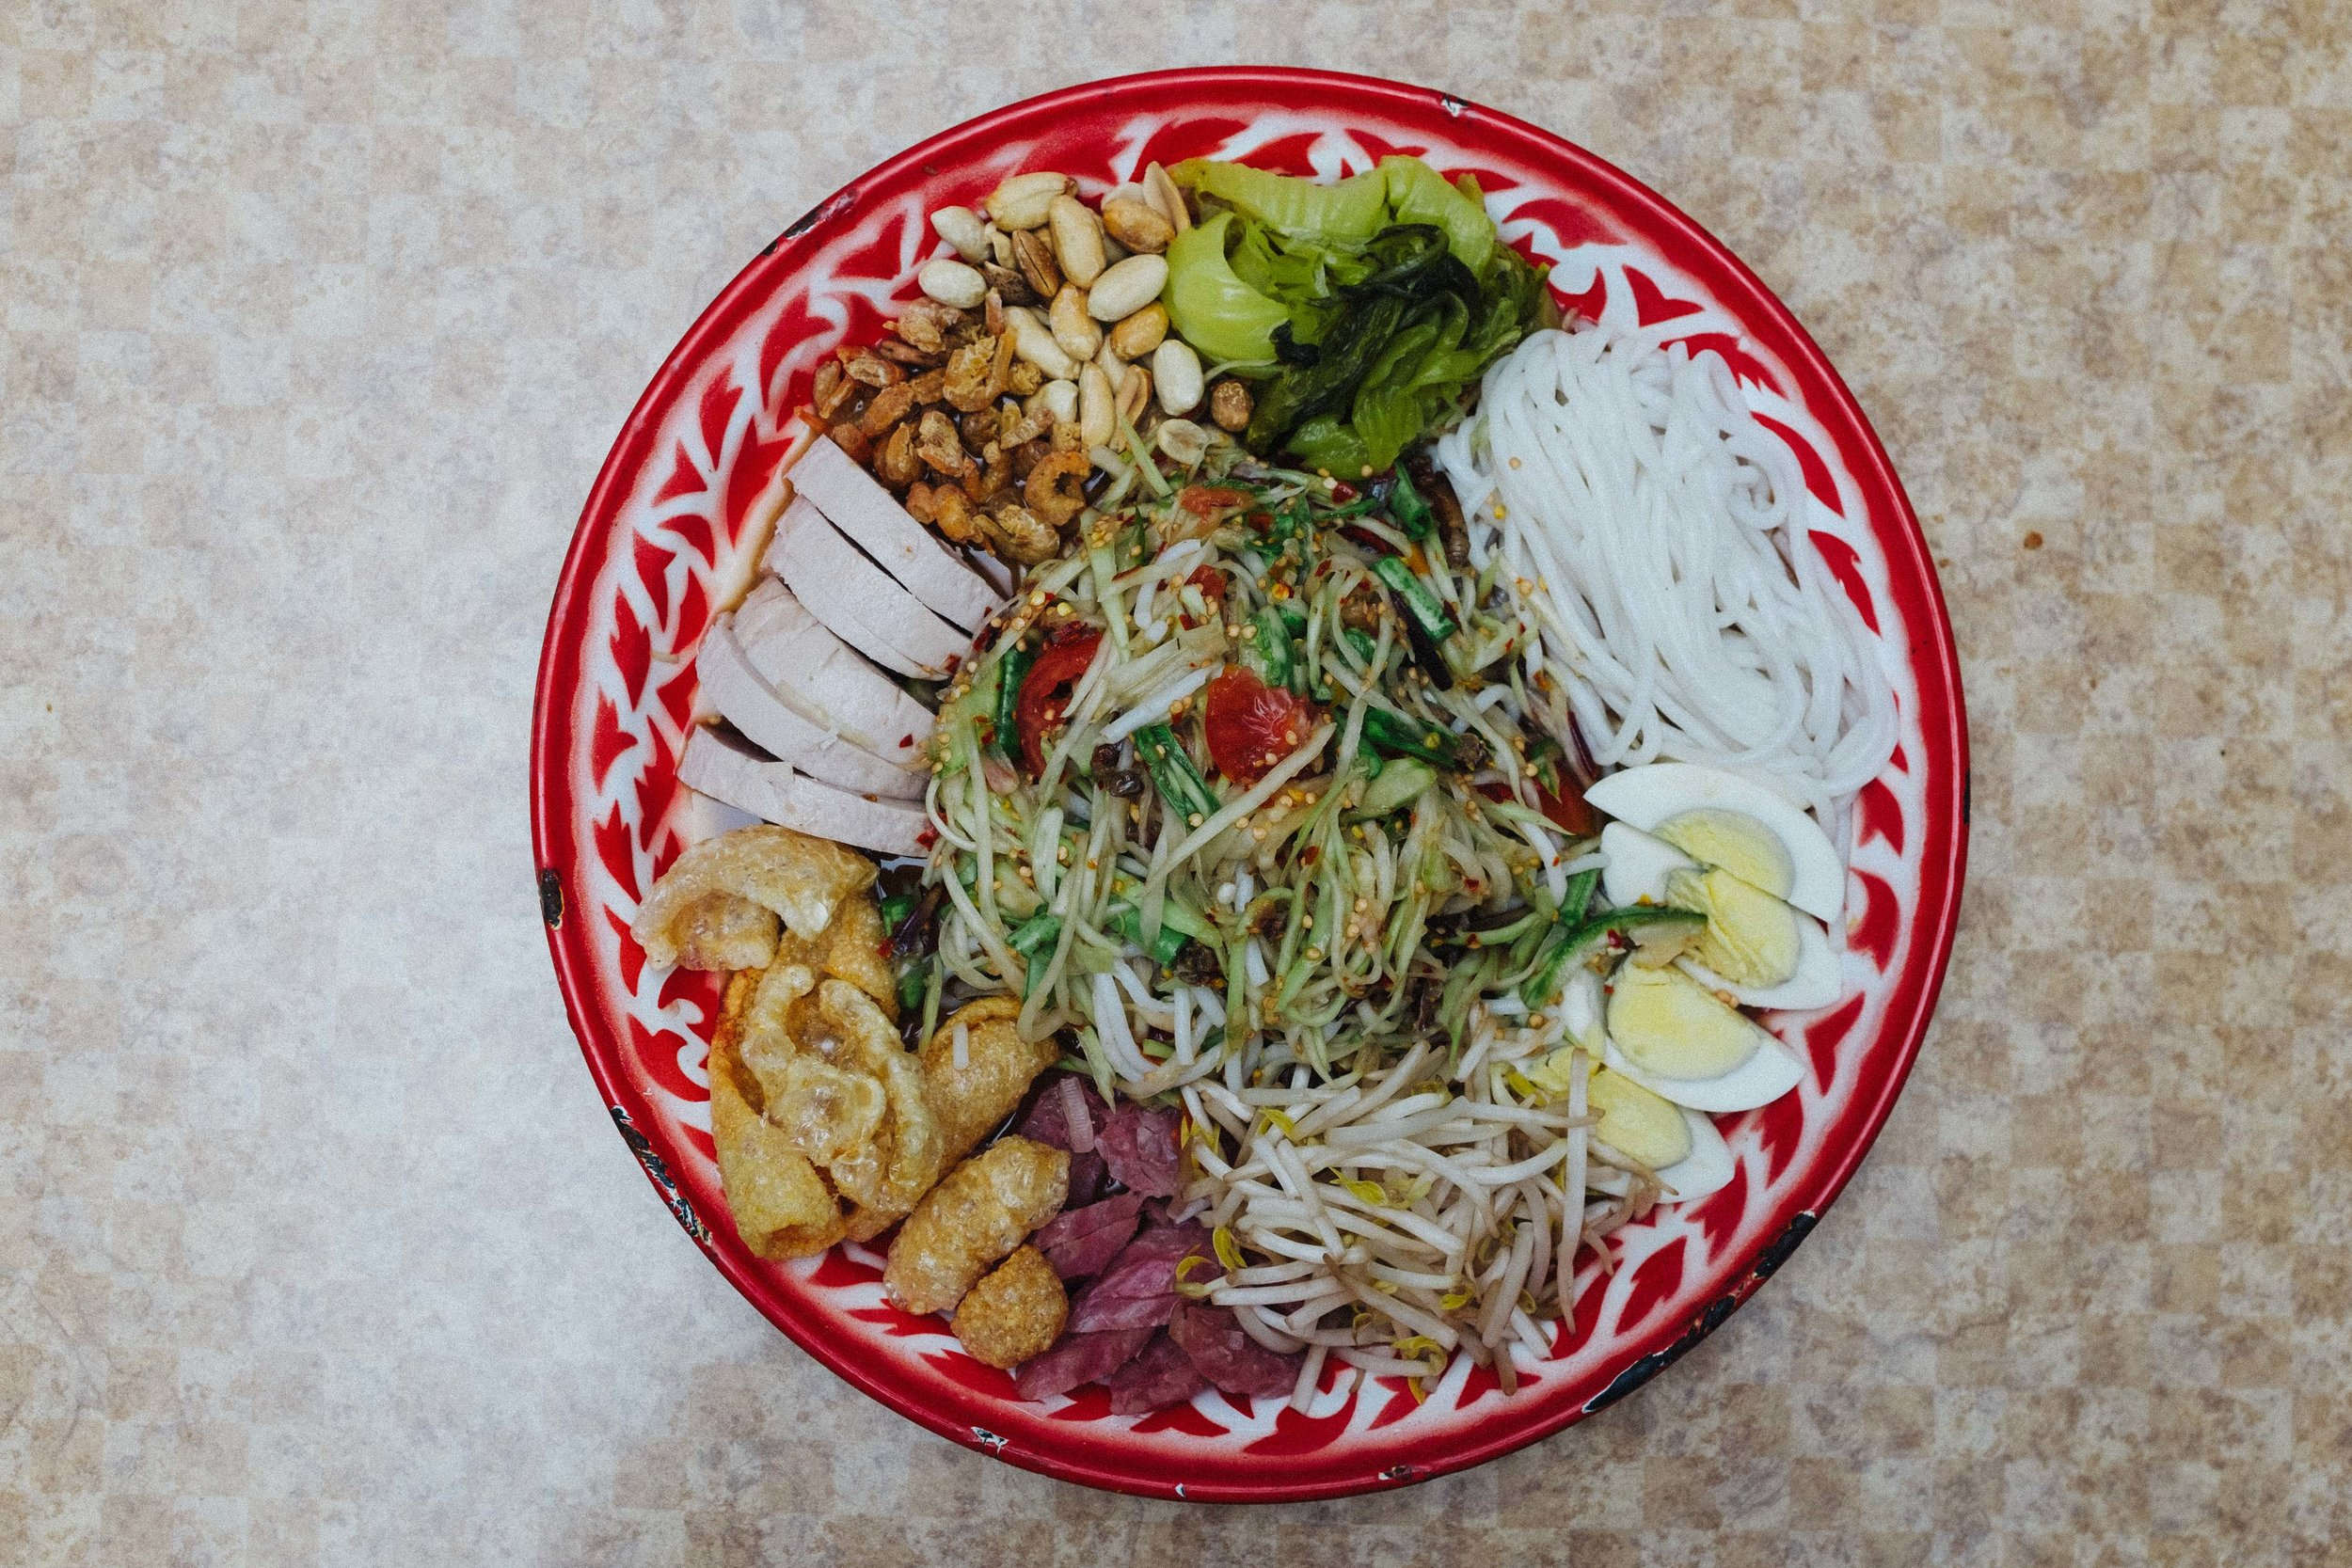 Som Tum Tad: Papaya Salad with assorted finger foods such as cracklins